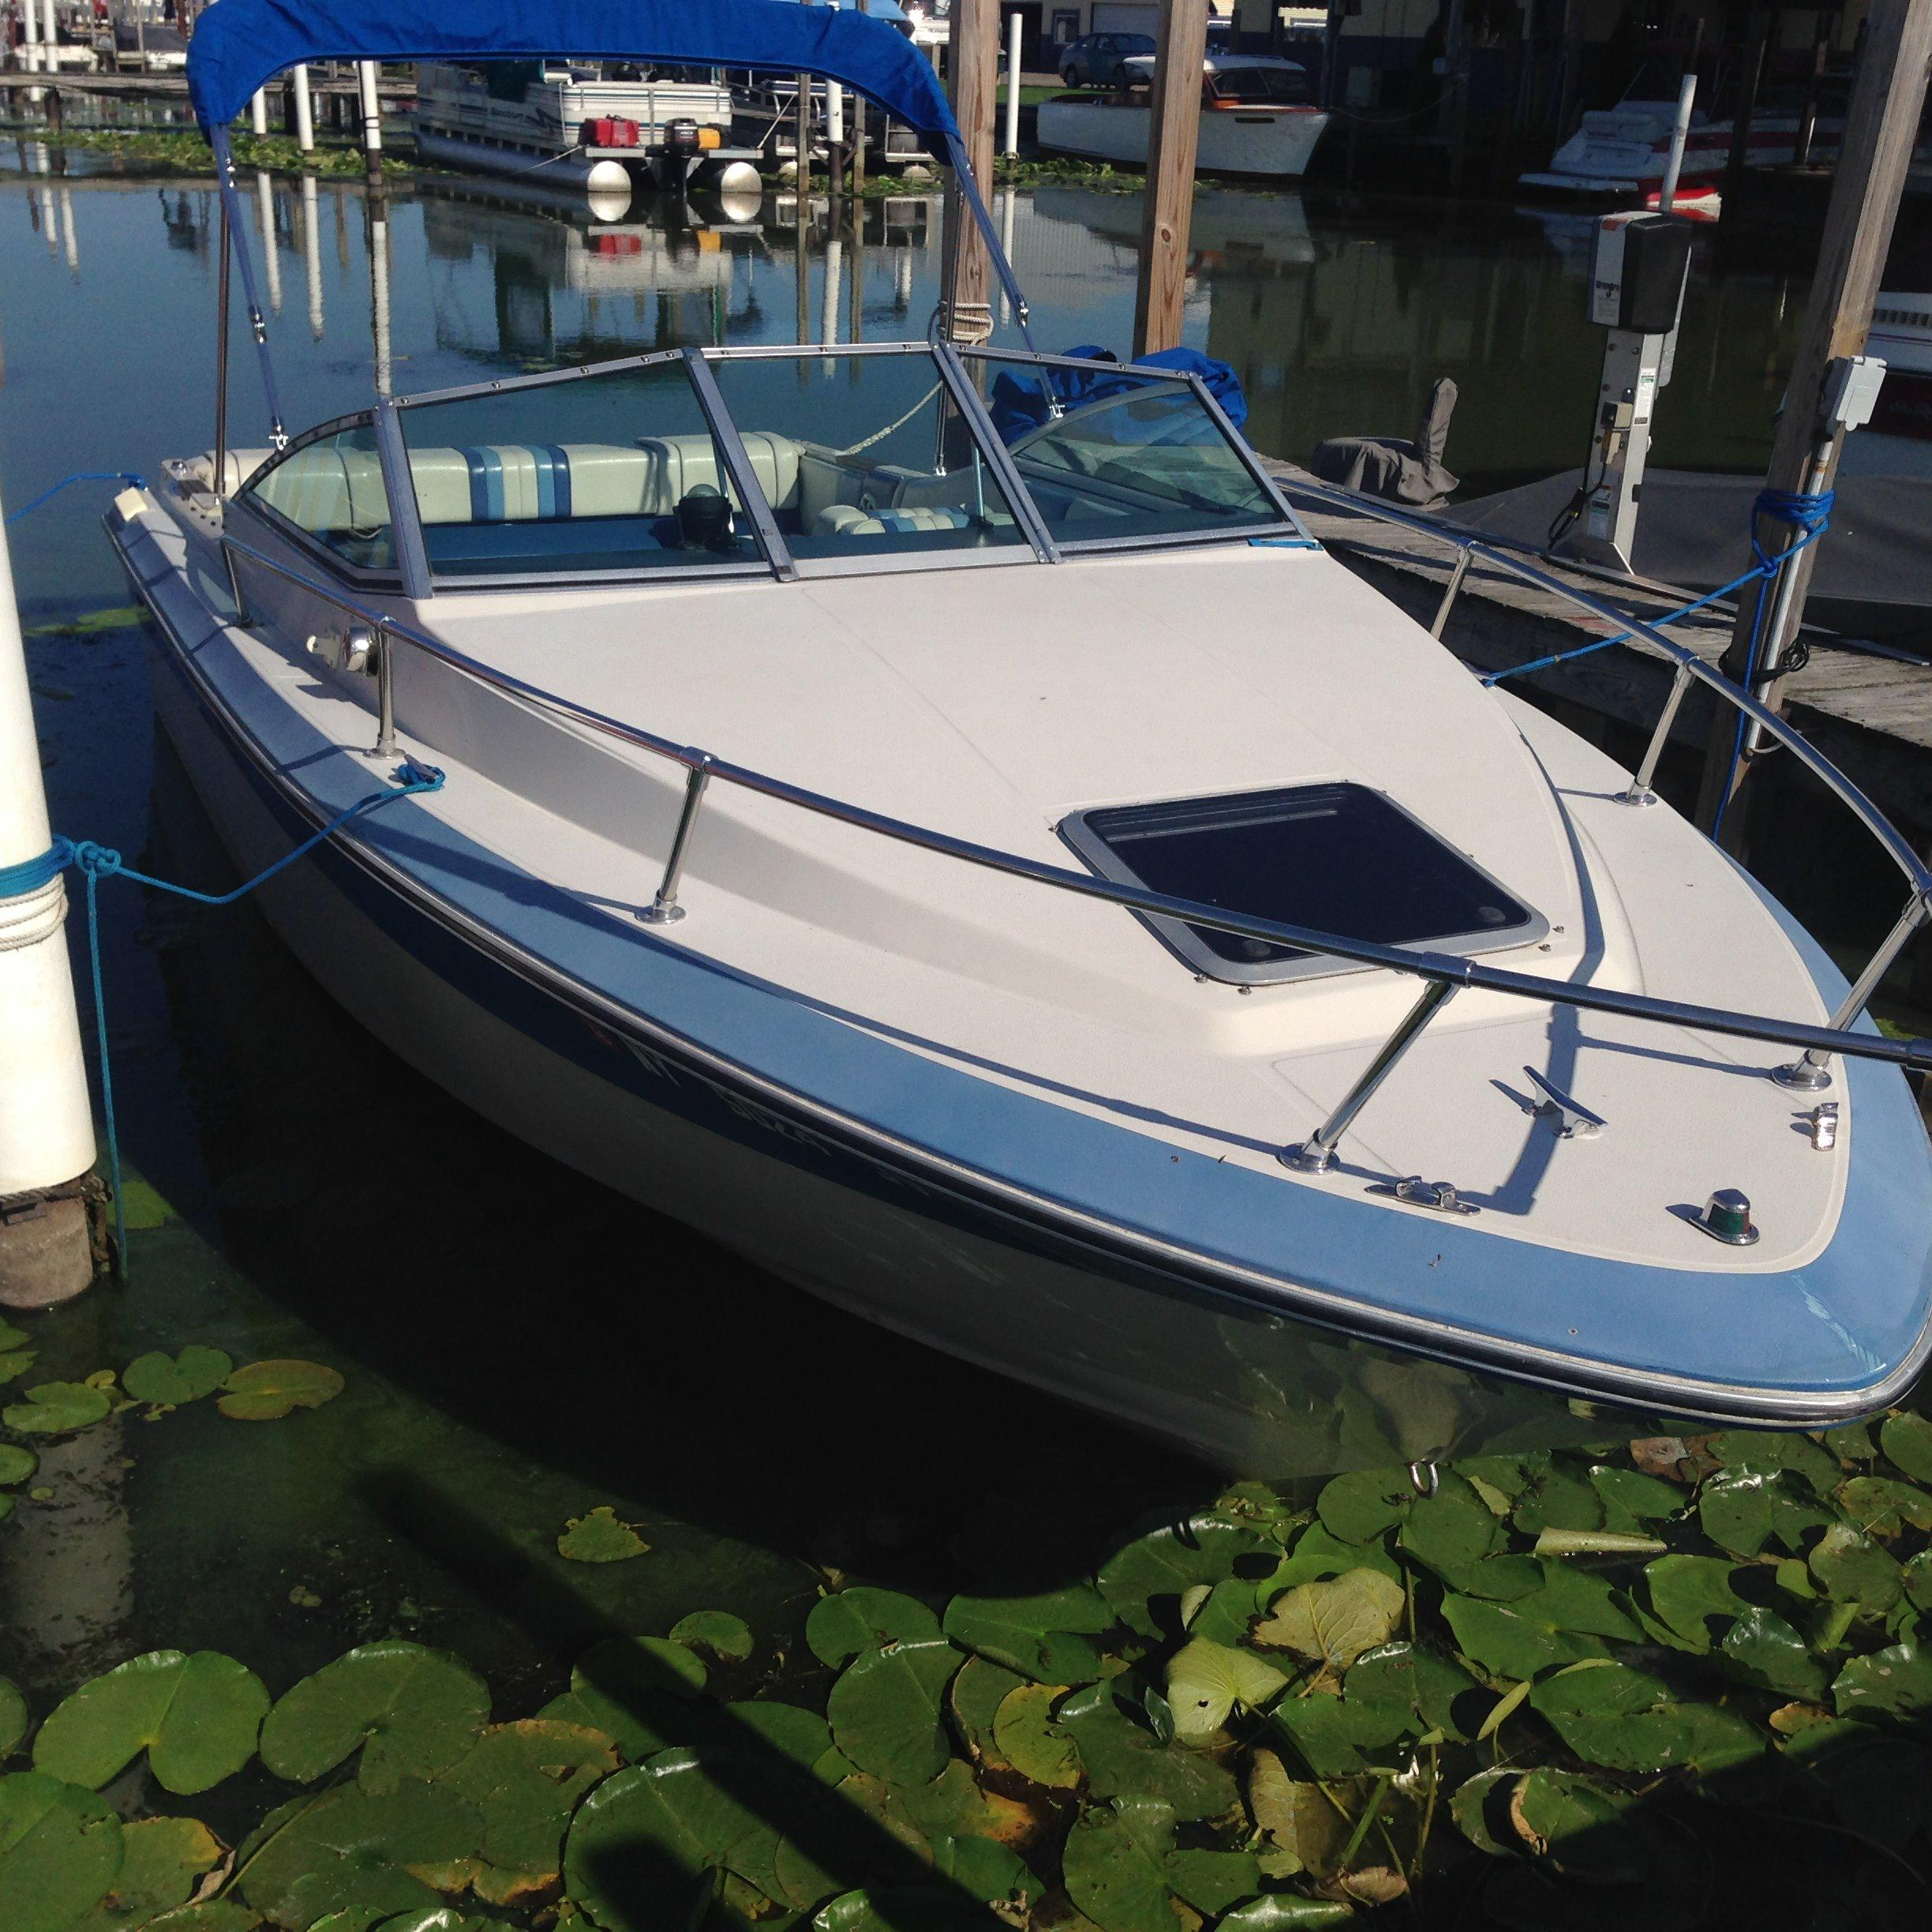 singles in celoron 1975 marinette express power boat for sale, located in new york, chautauqua lake-celoron.